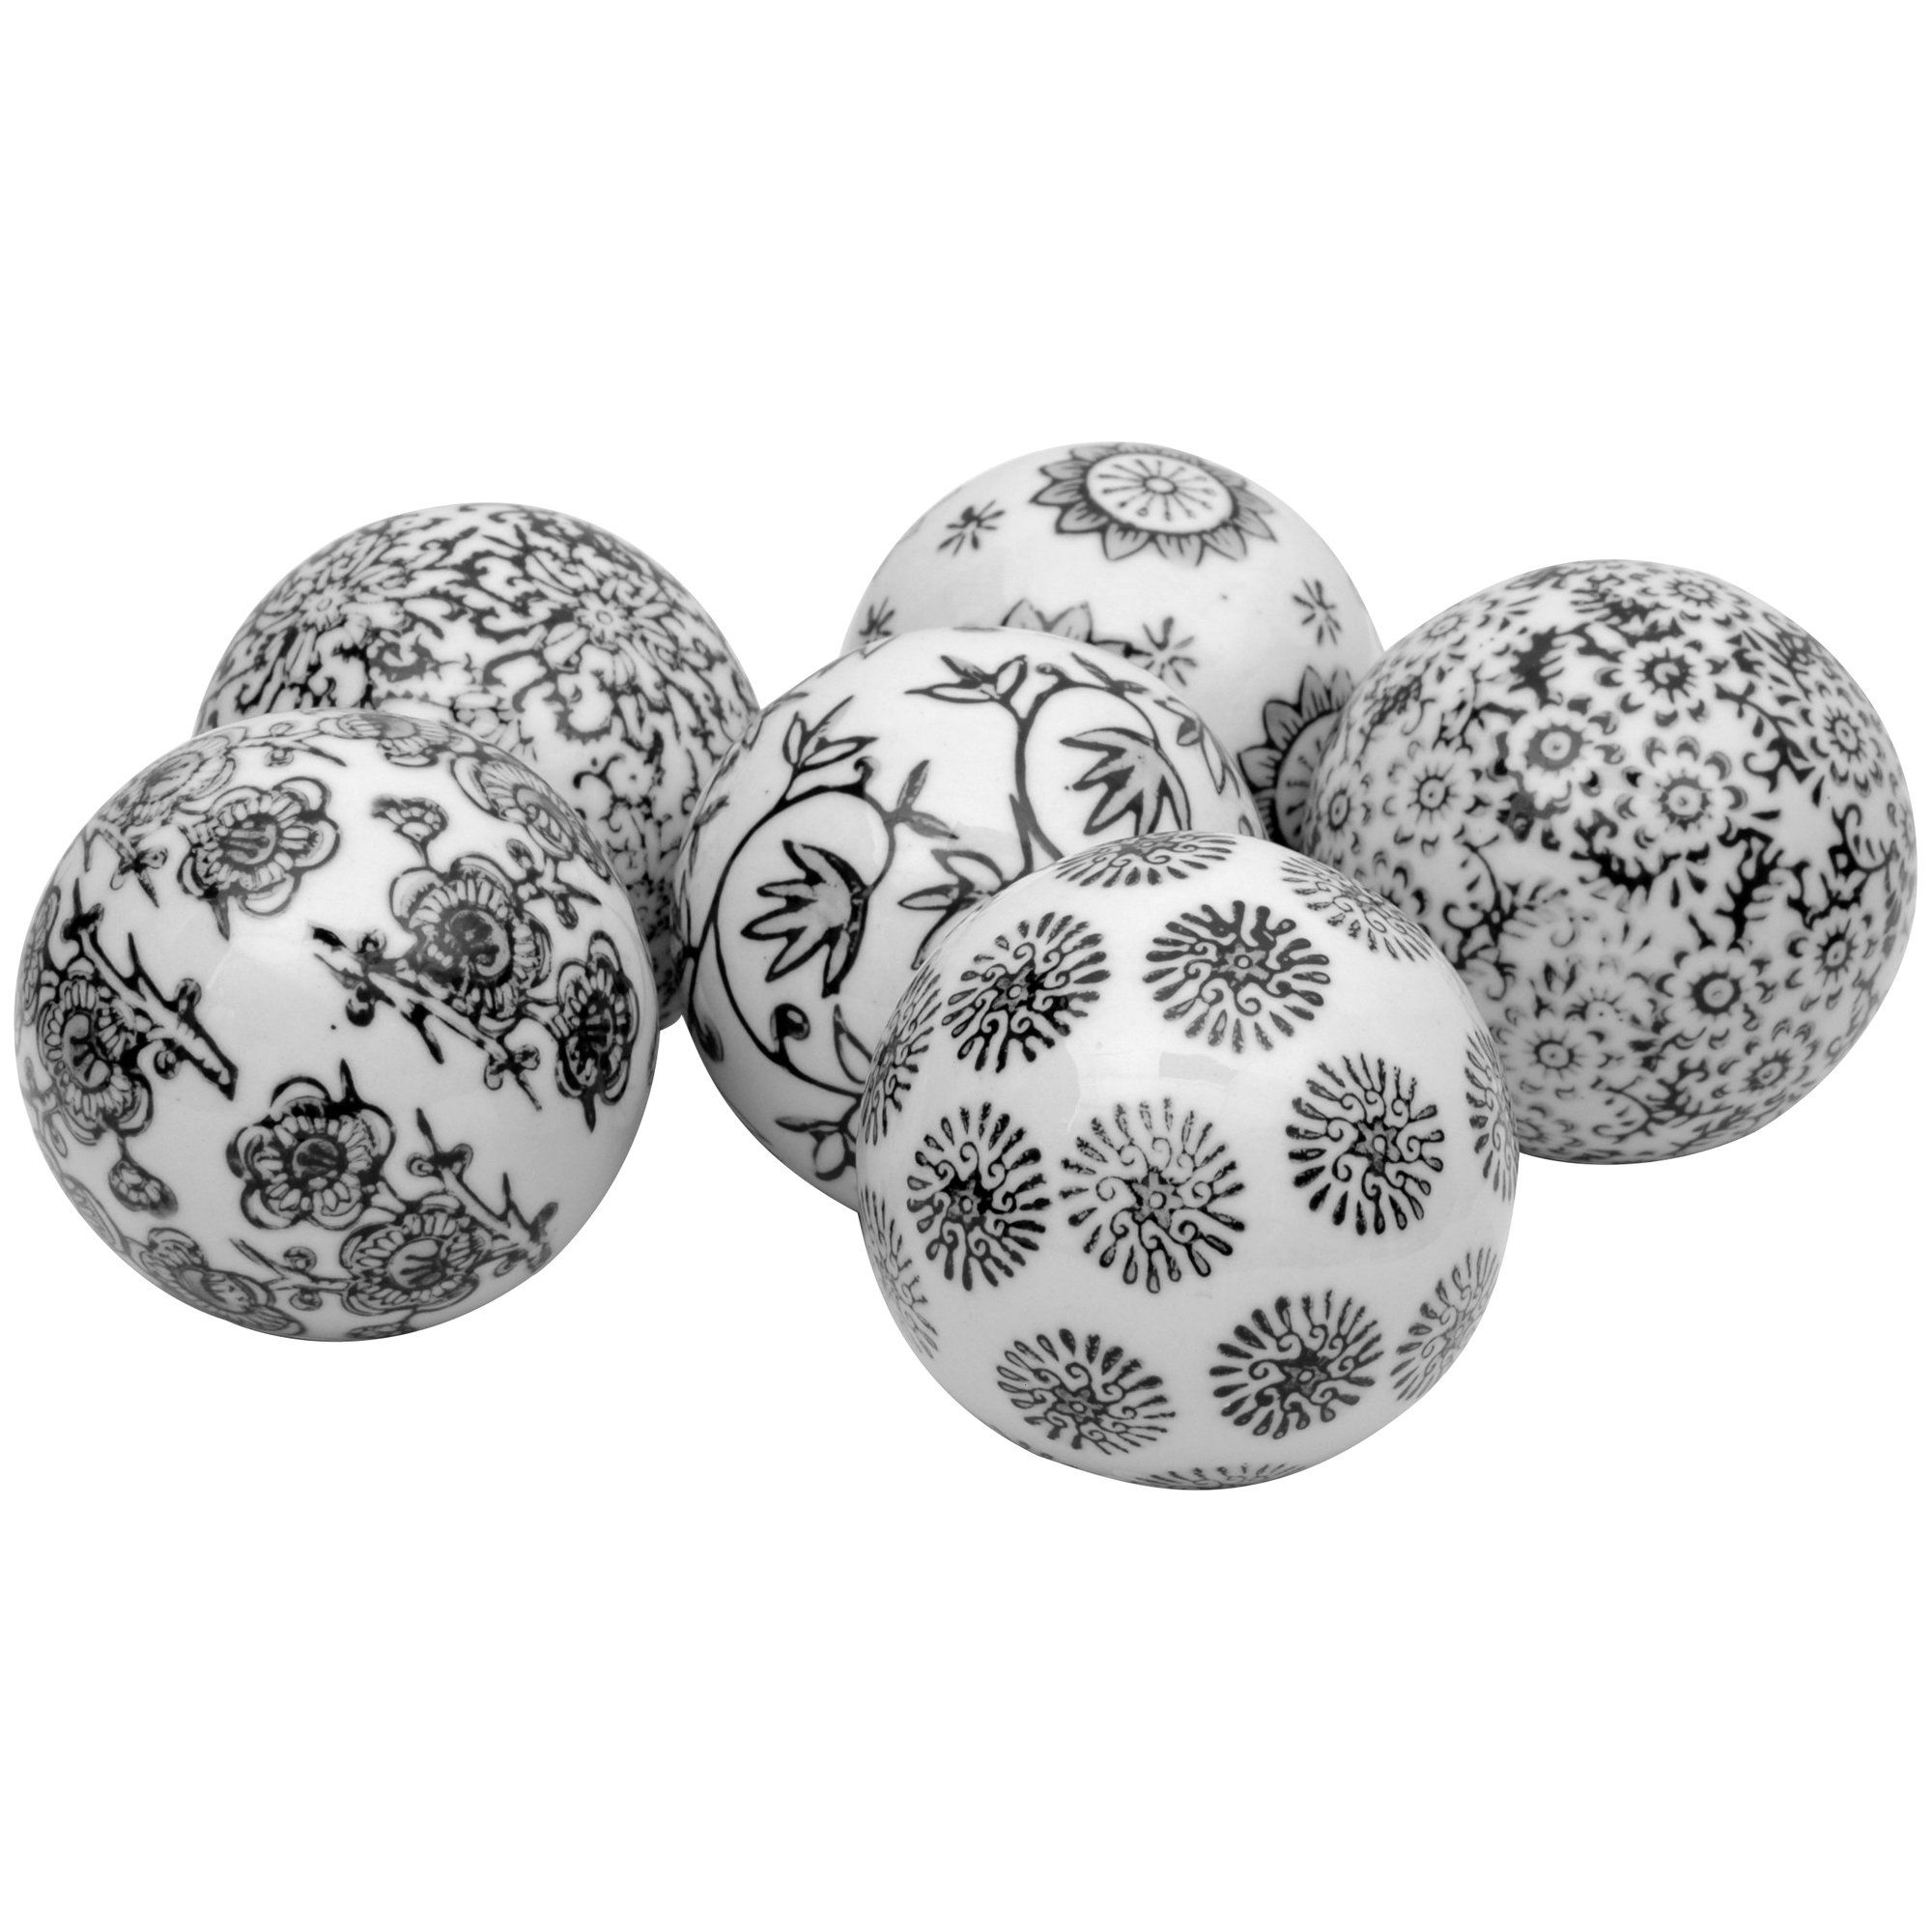 balls crimson over red free shipping garden decor product set home of decorative overstock on orders inch